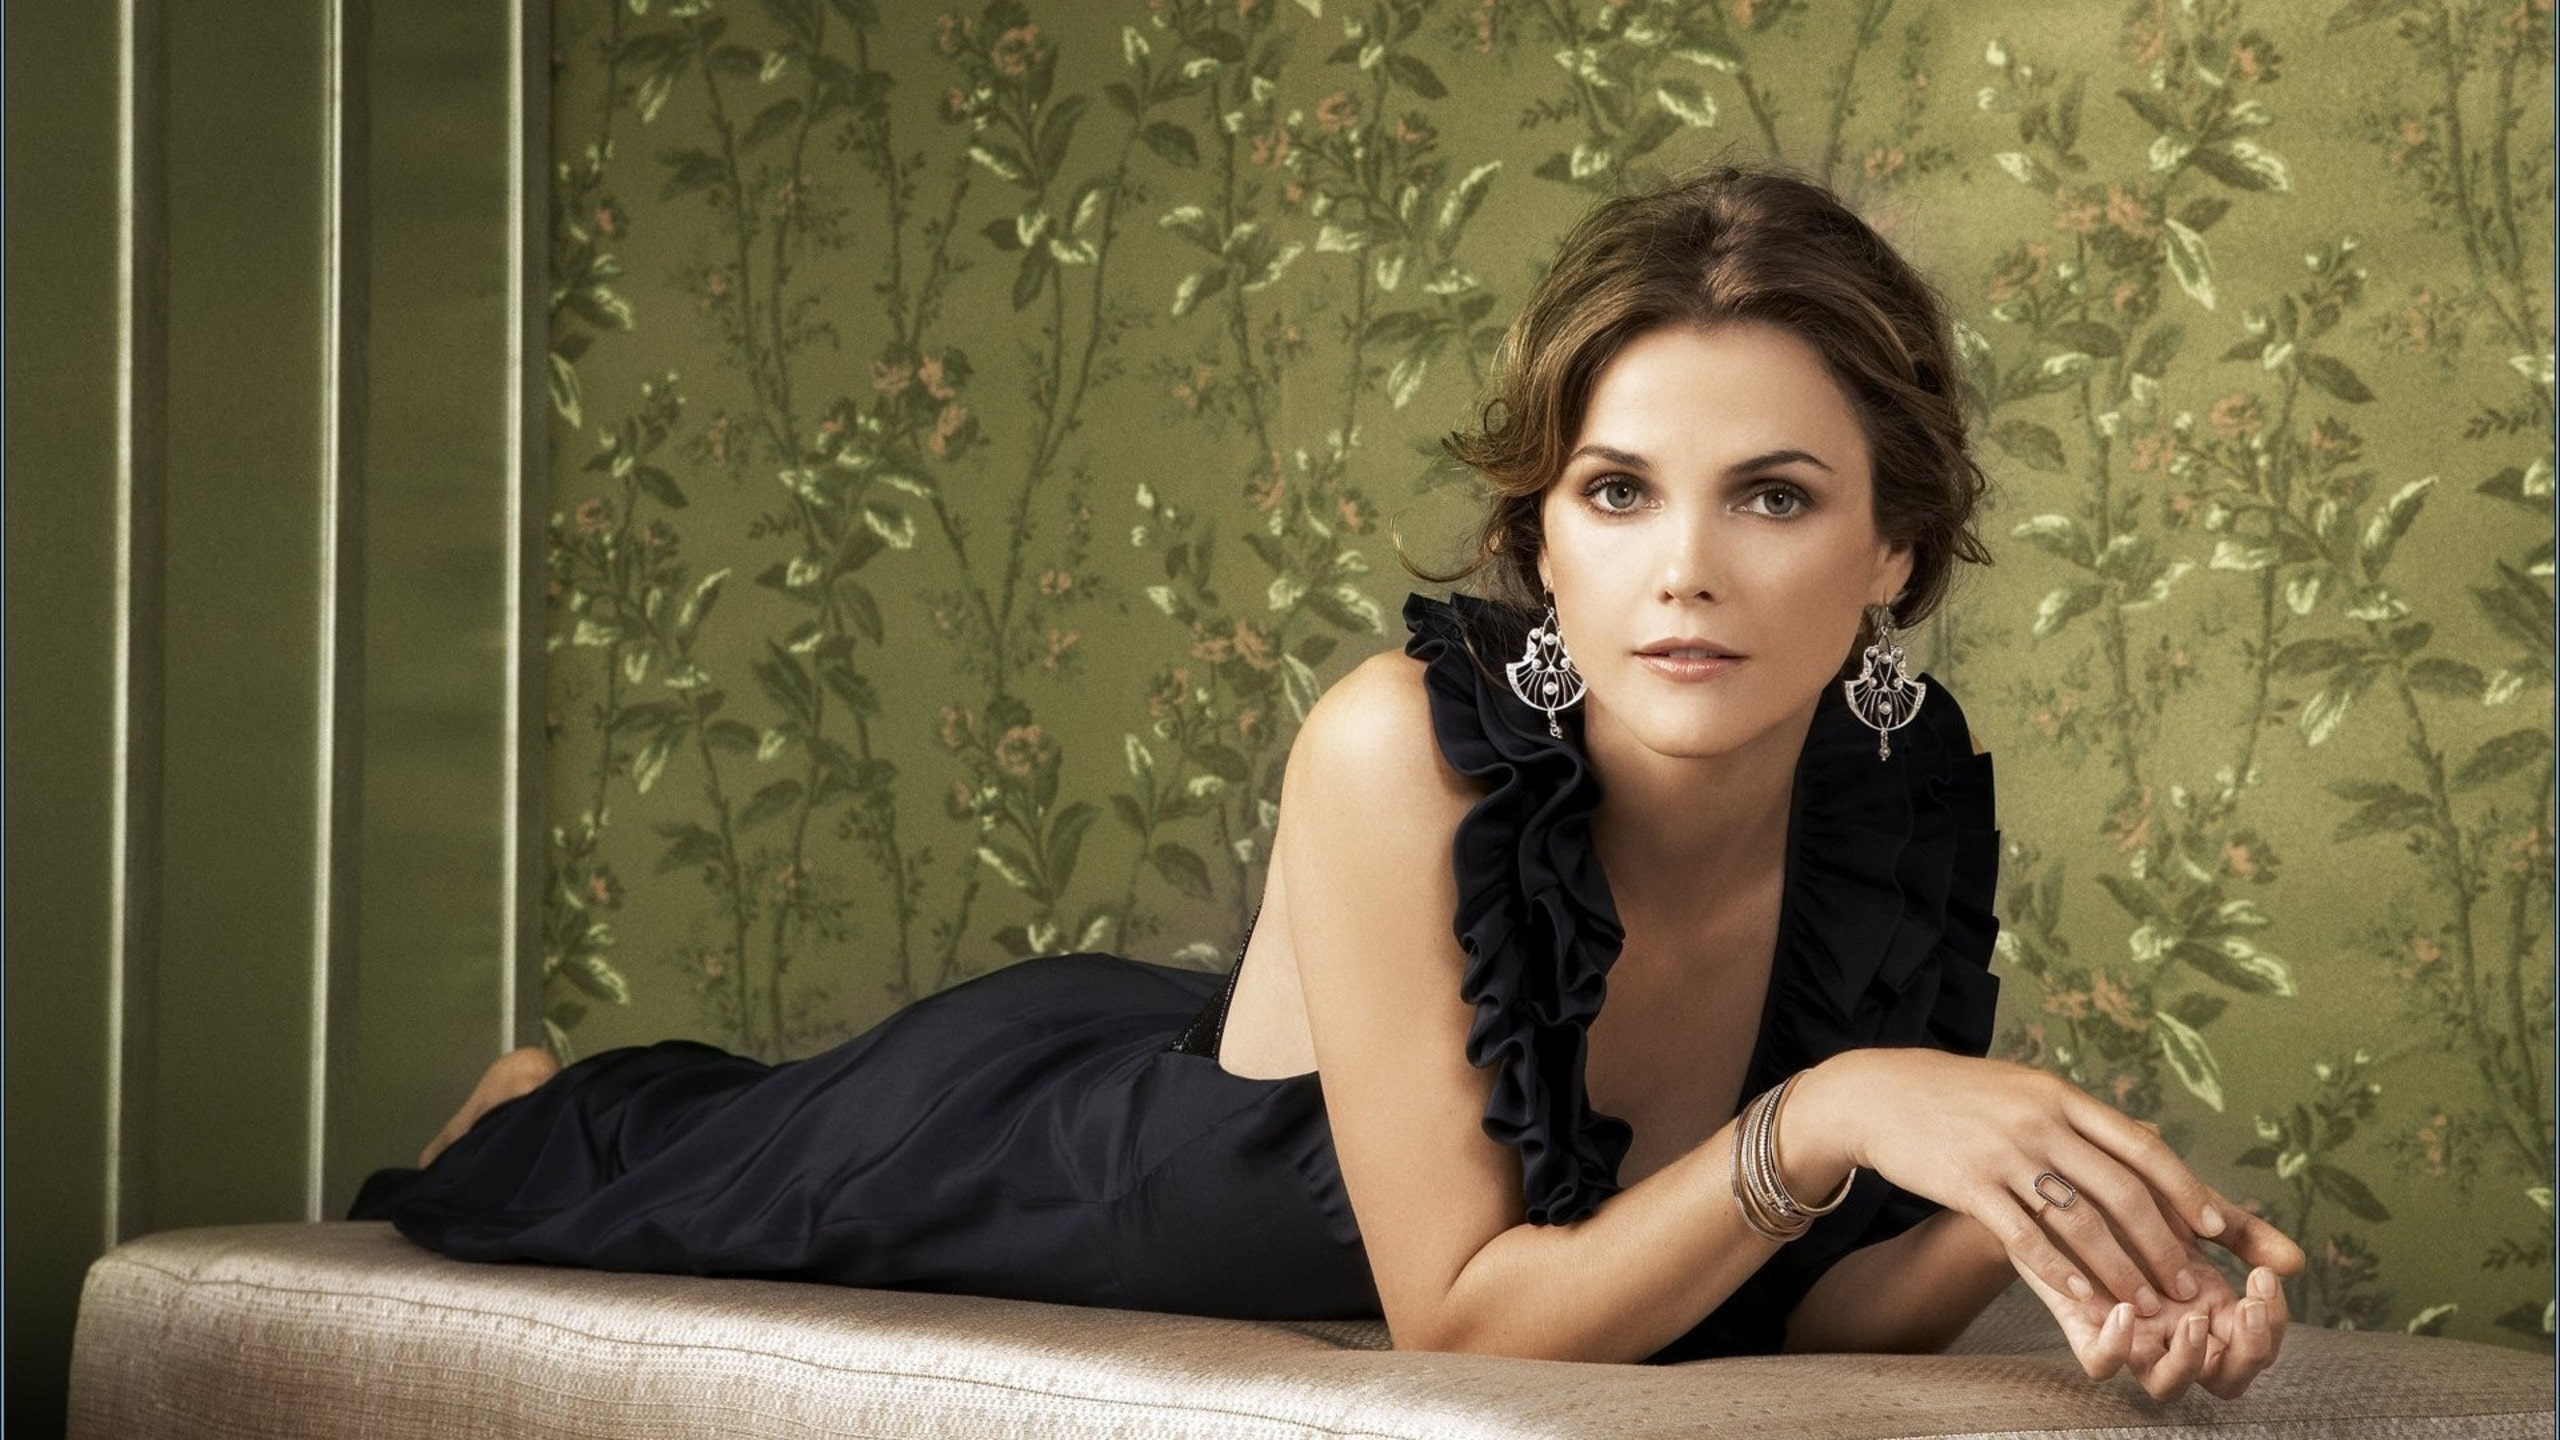 Keri Russell Hd Wallpapers 7wallpapersnet